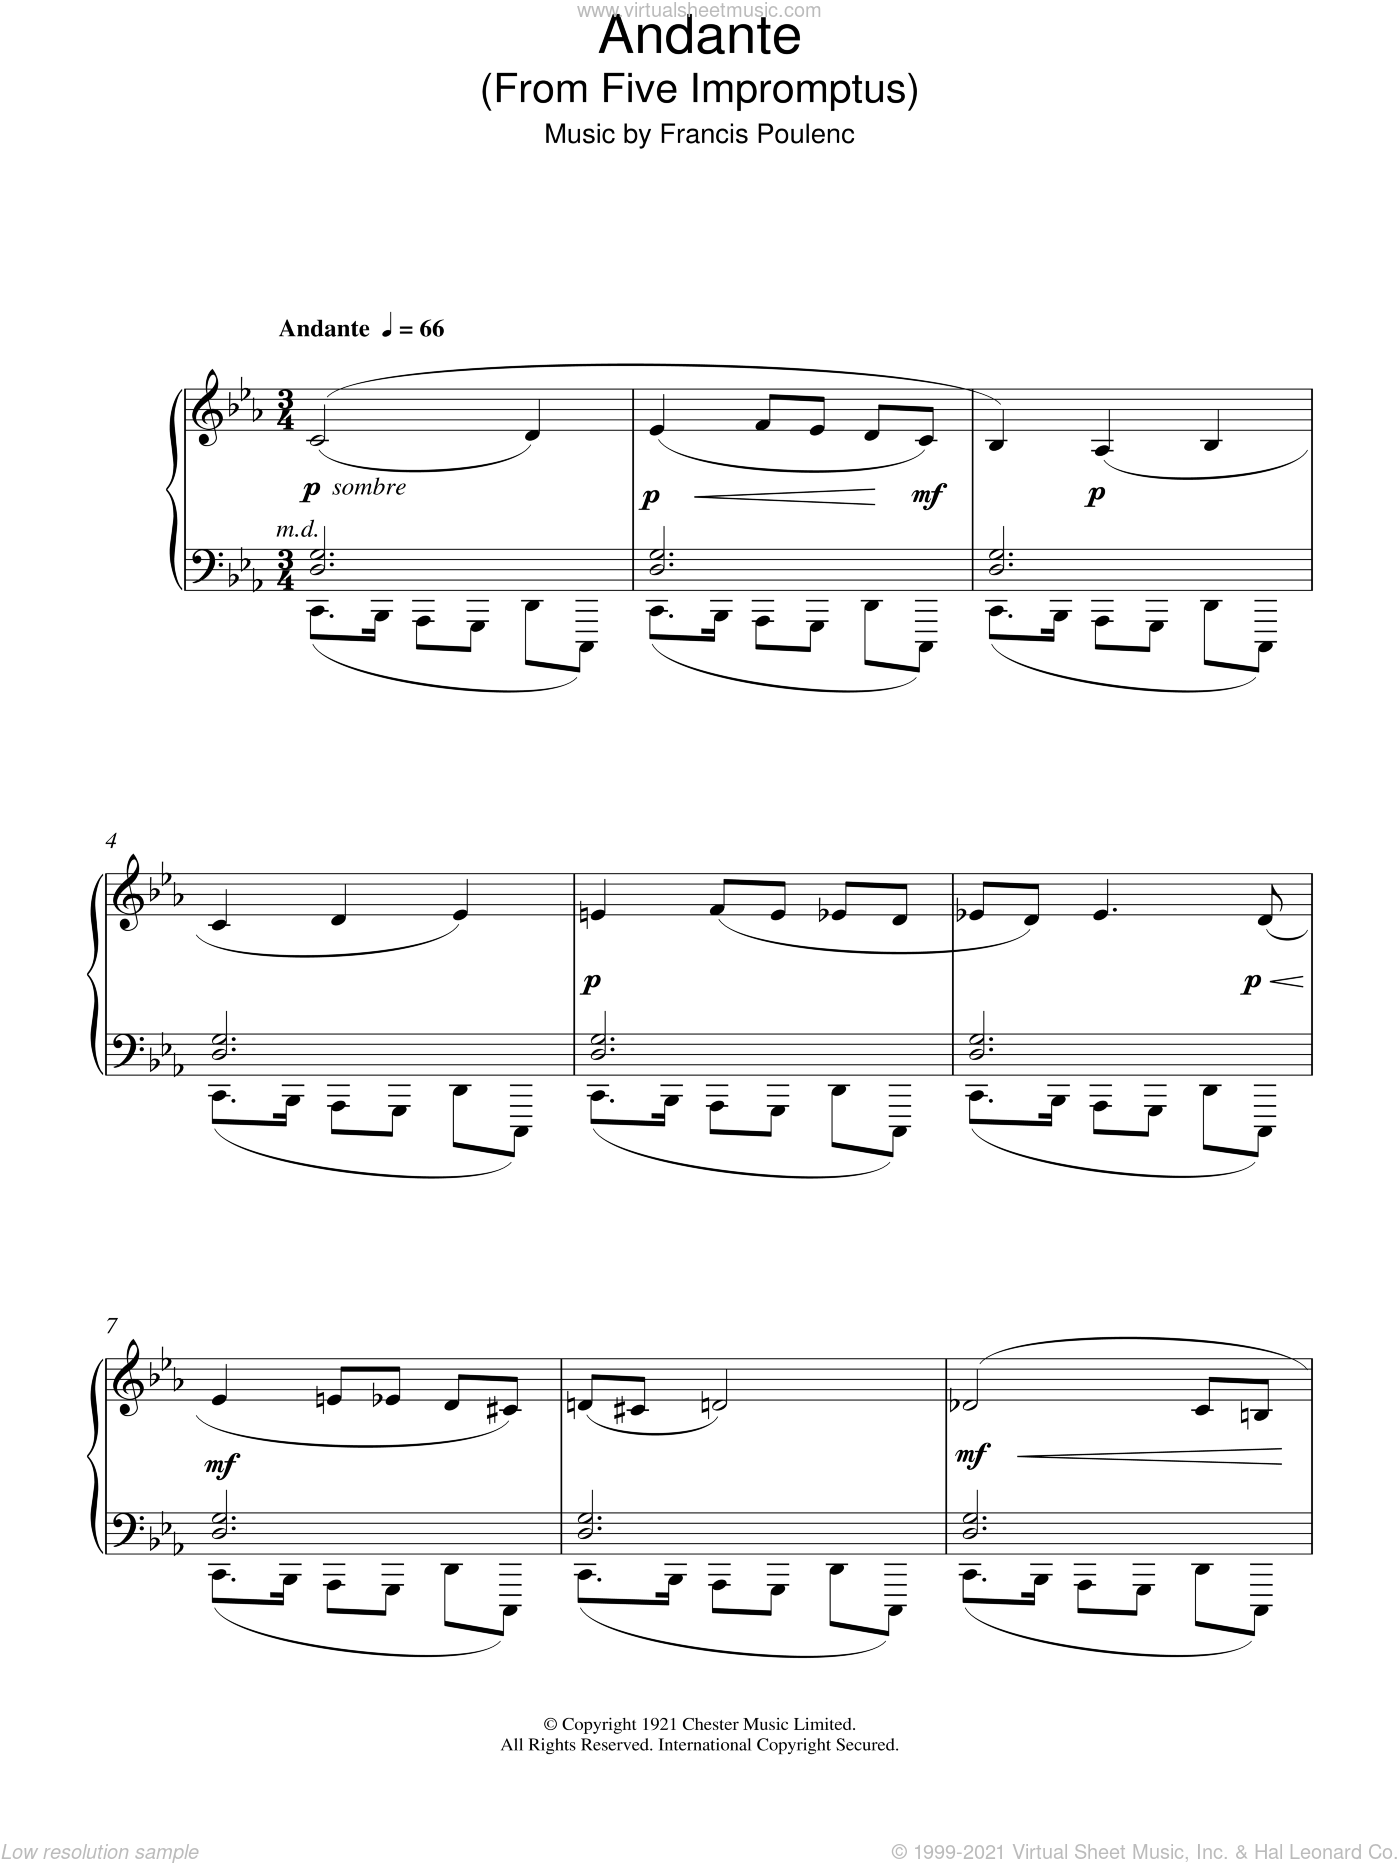 Andante (From Five Impromptus) sheet music for piano solo by Francis Poulenc. Score Image Preview.